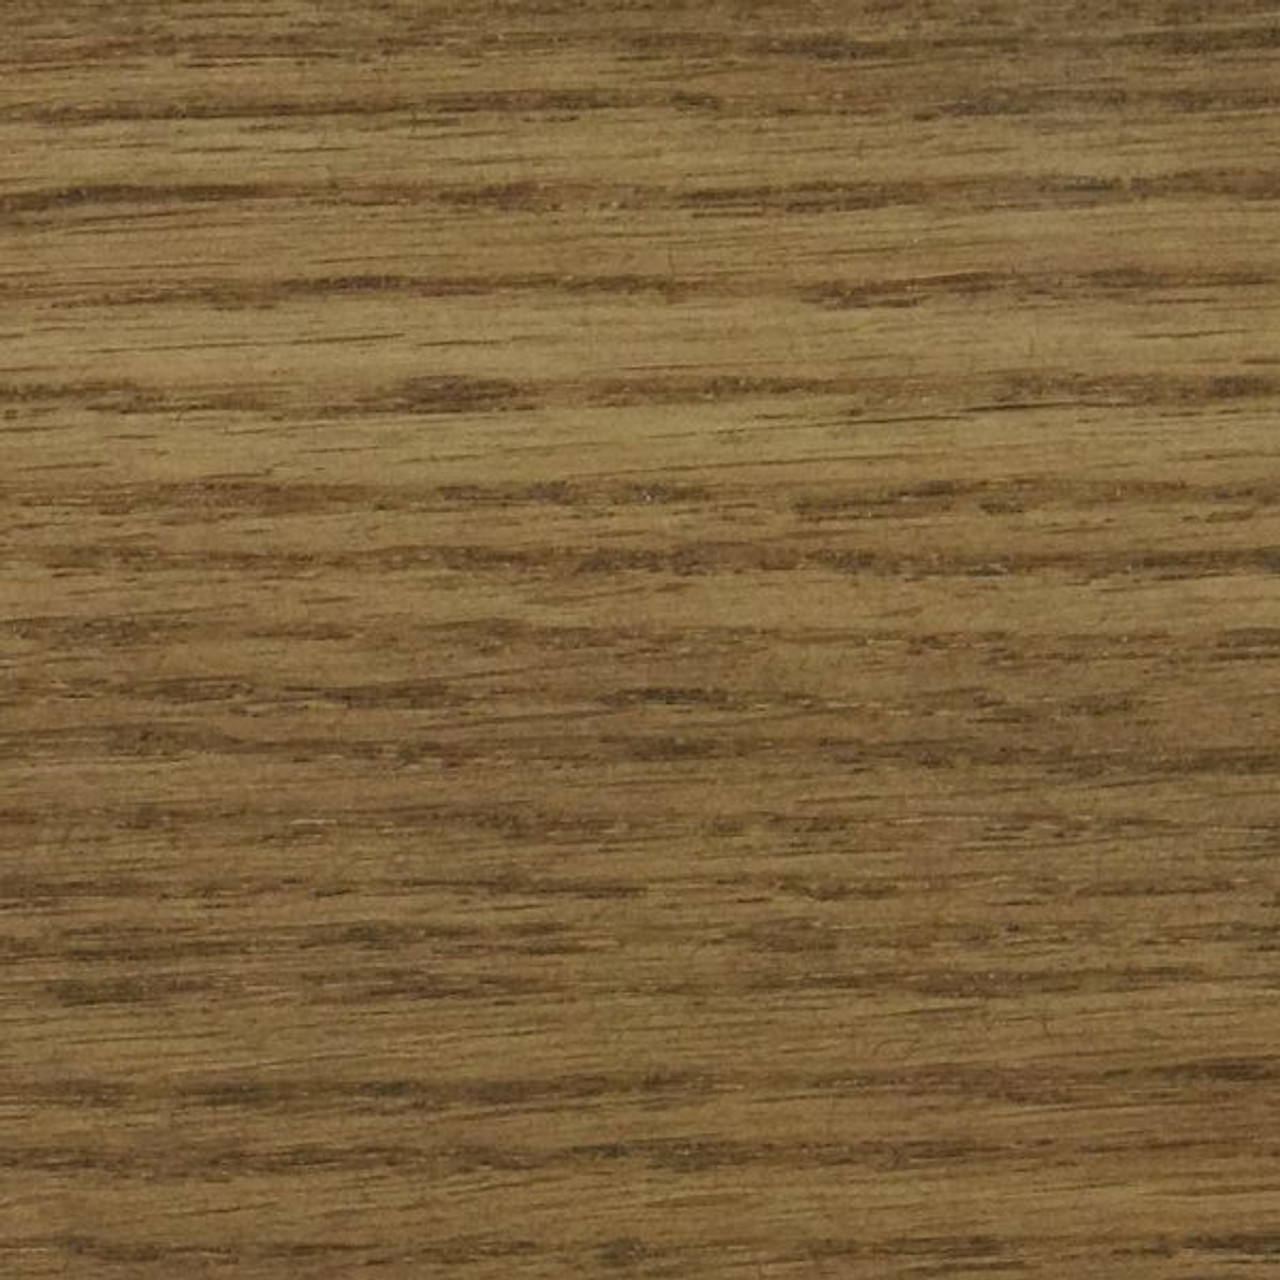 A sample of what the Saman olive stain looks like on wood.